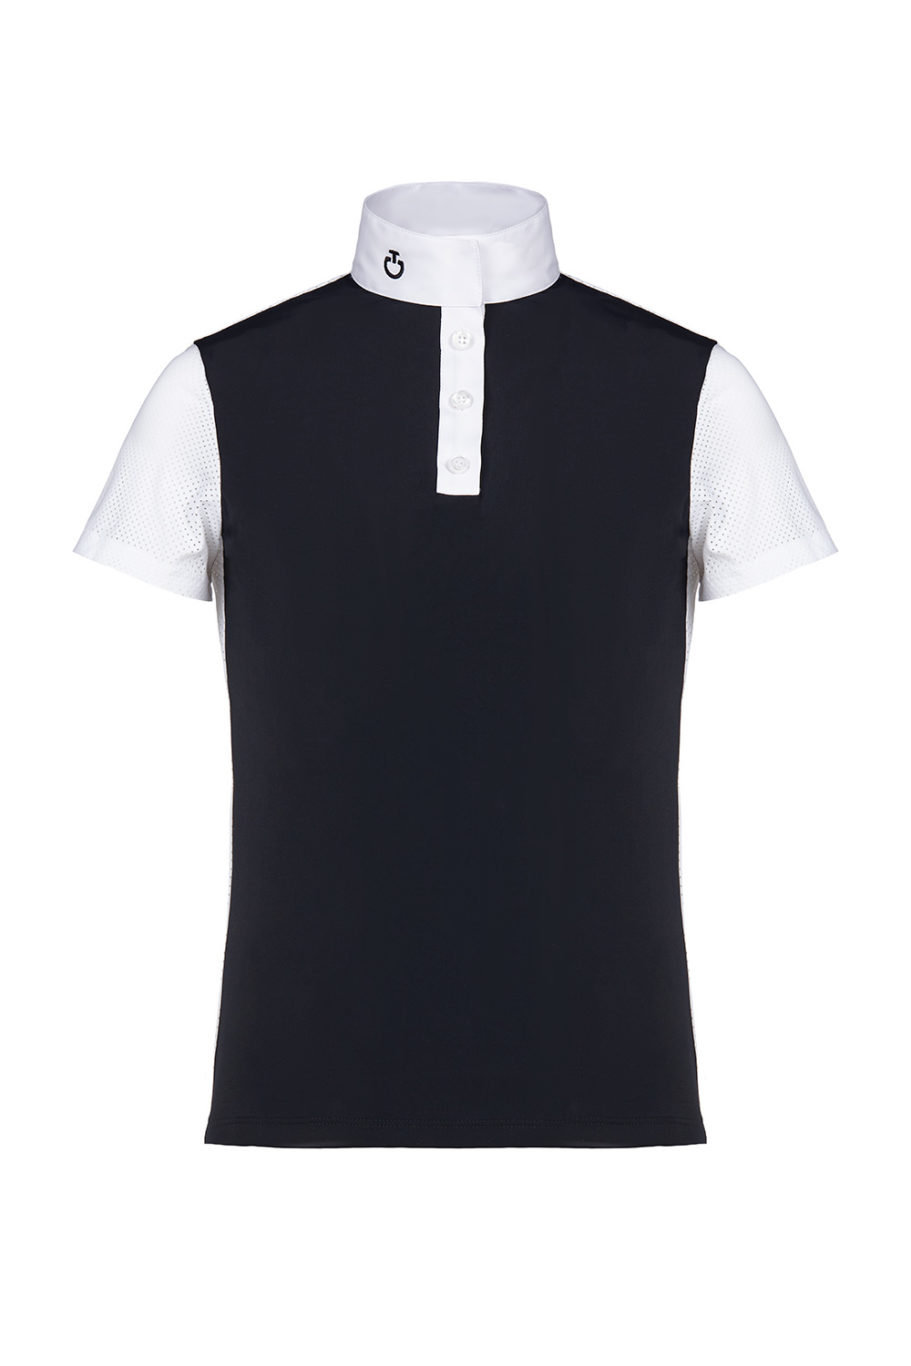 PERFORATED JERSEY S/S POLO